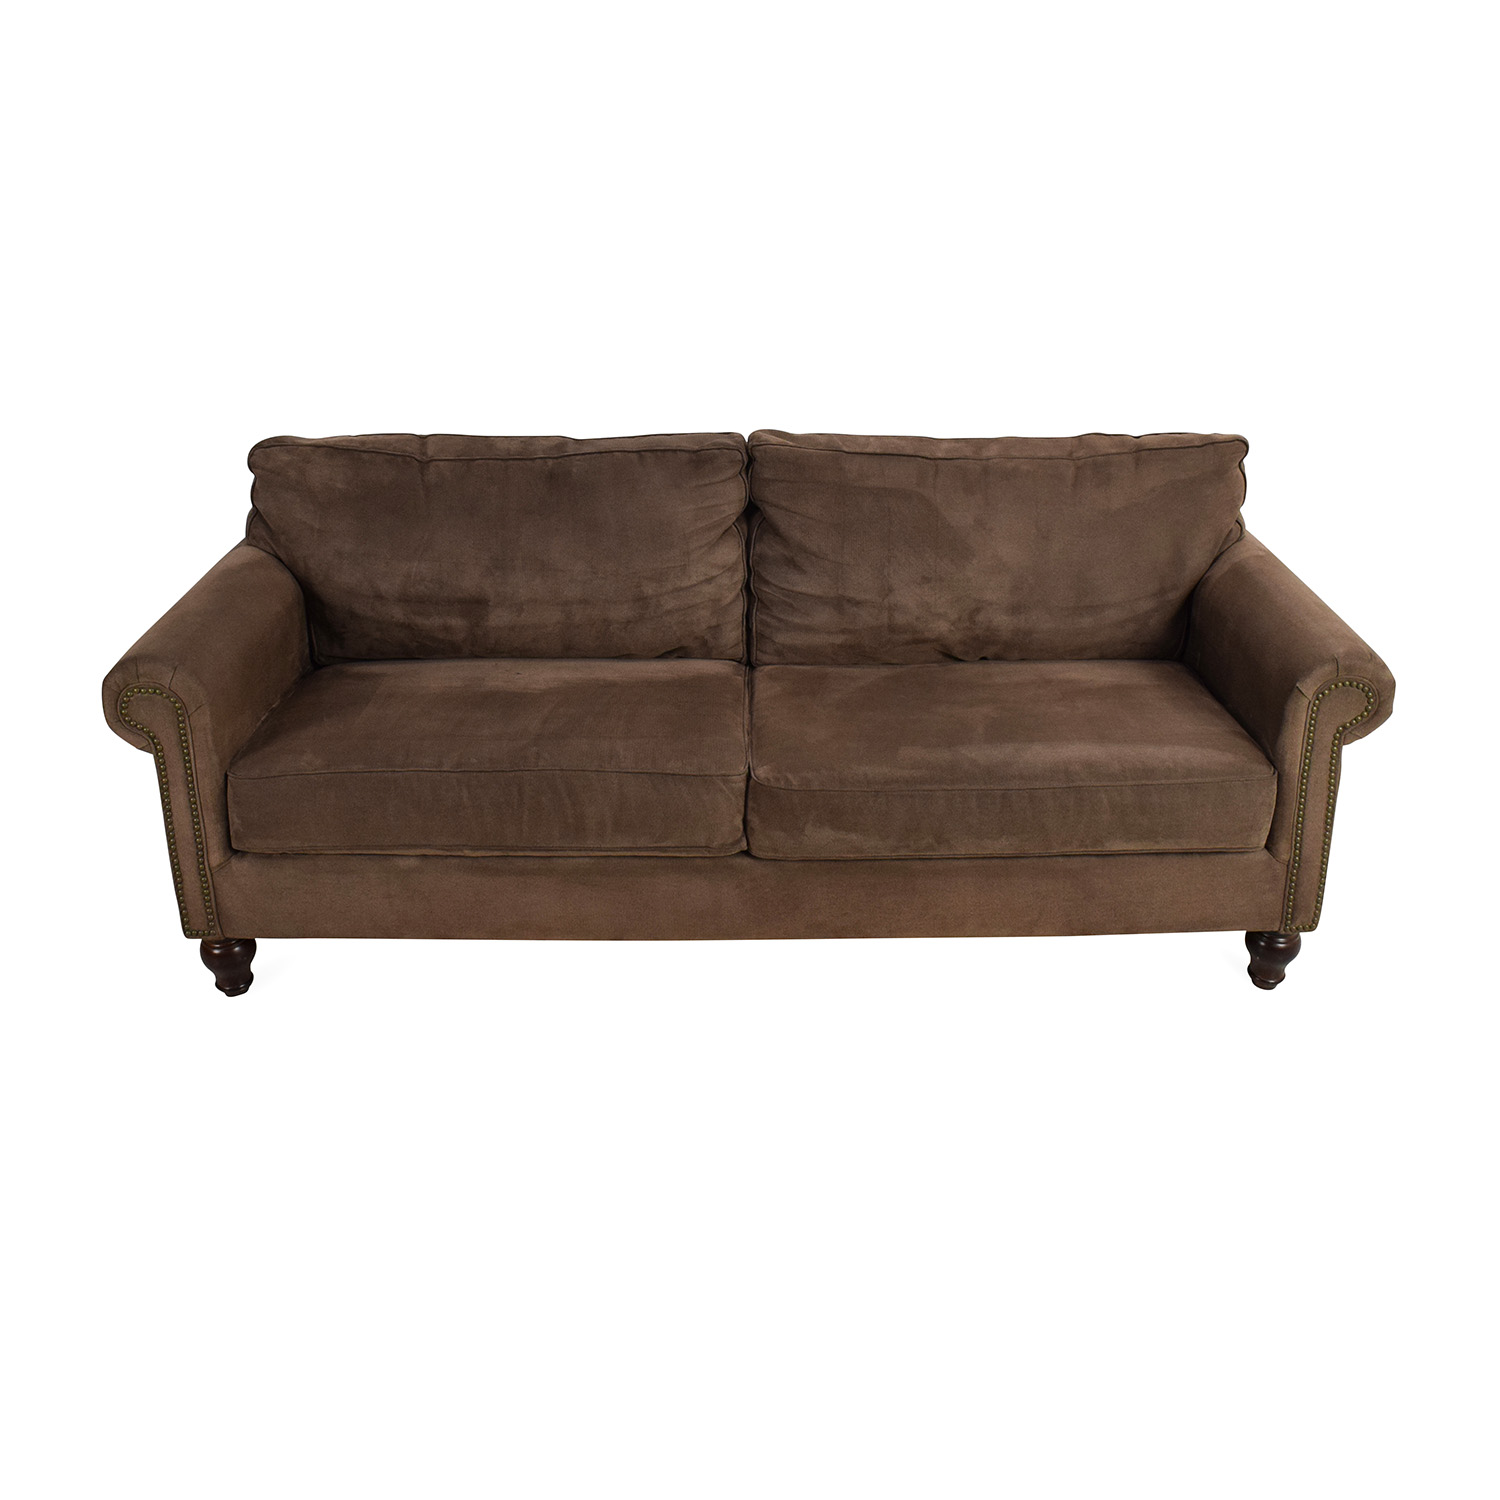 Wonderful ... Pier 1 Alton Ecru Rolled Arm Sofa Pier 1 Imports ...